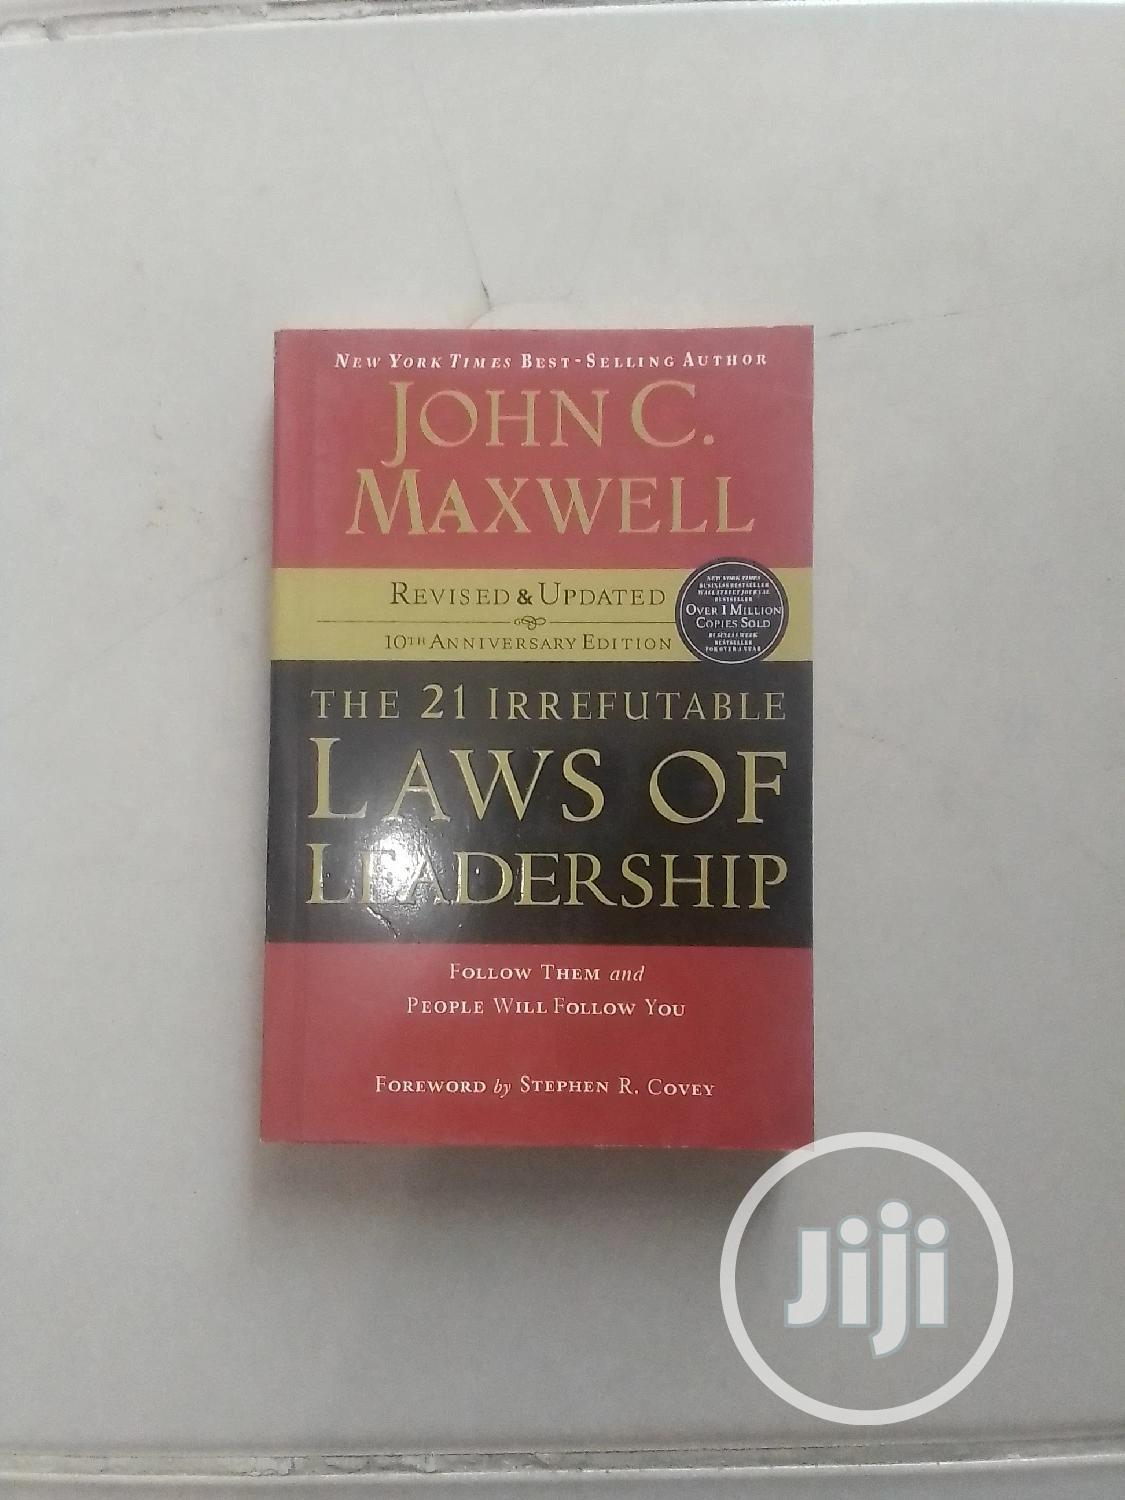 Archive: The 21 Irrefutable Laws of Leadership by John C Maxwell